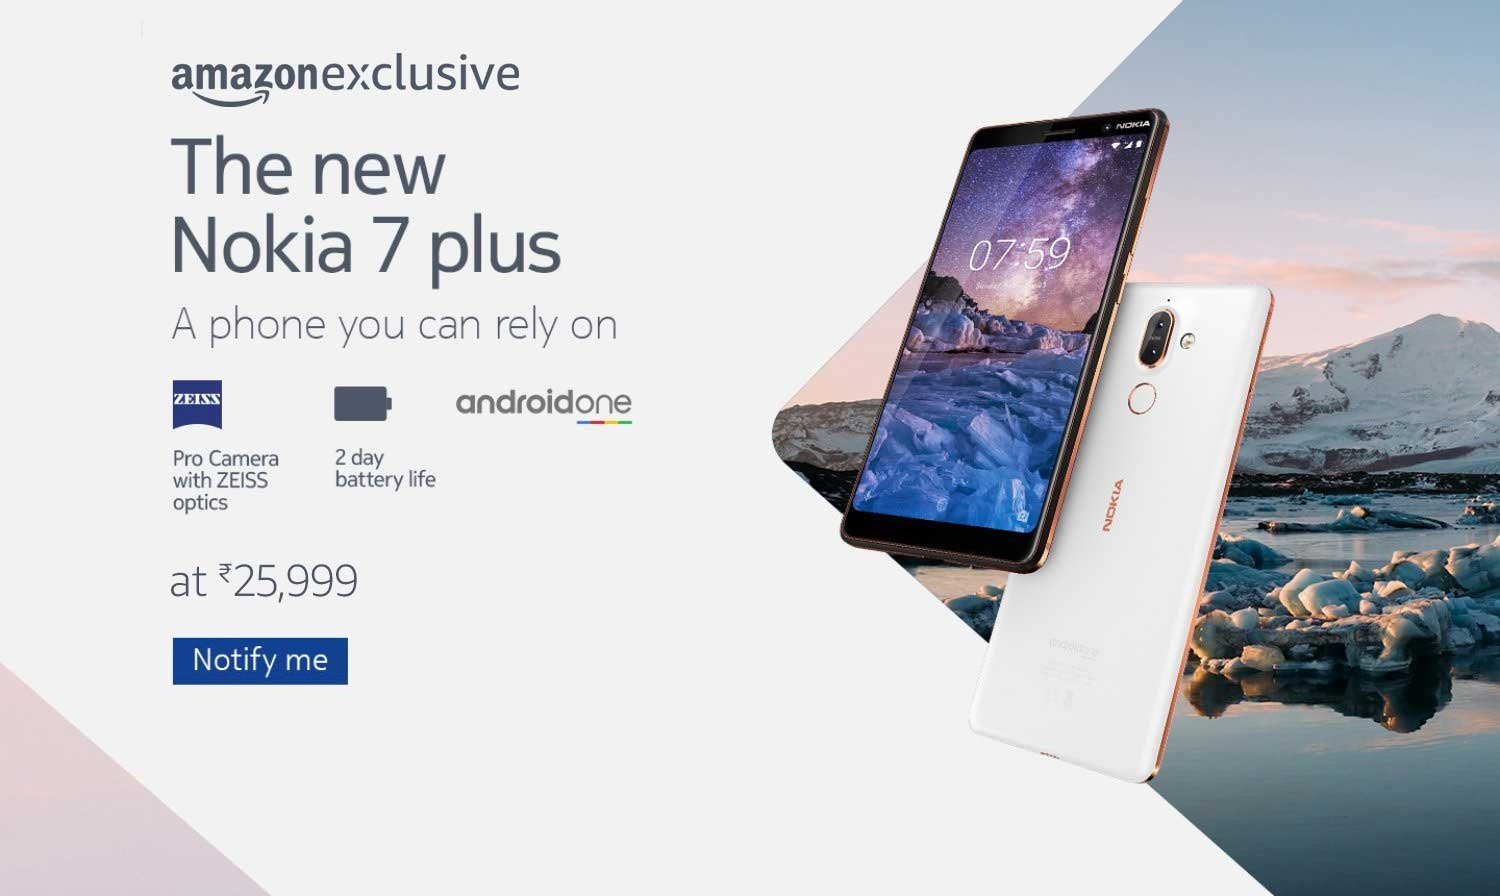 buy popular 846d4 bfd0e Nokia 7 Plus: Nokia 7 Plus Specifications, Features at Amazon.in